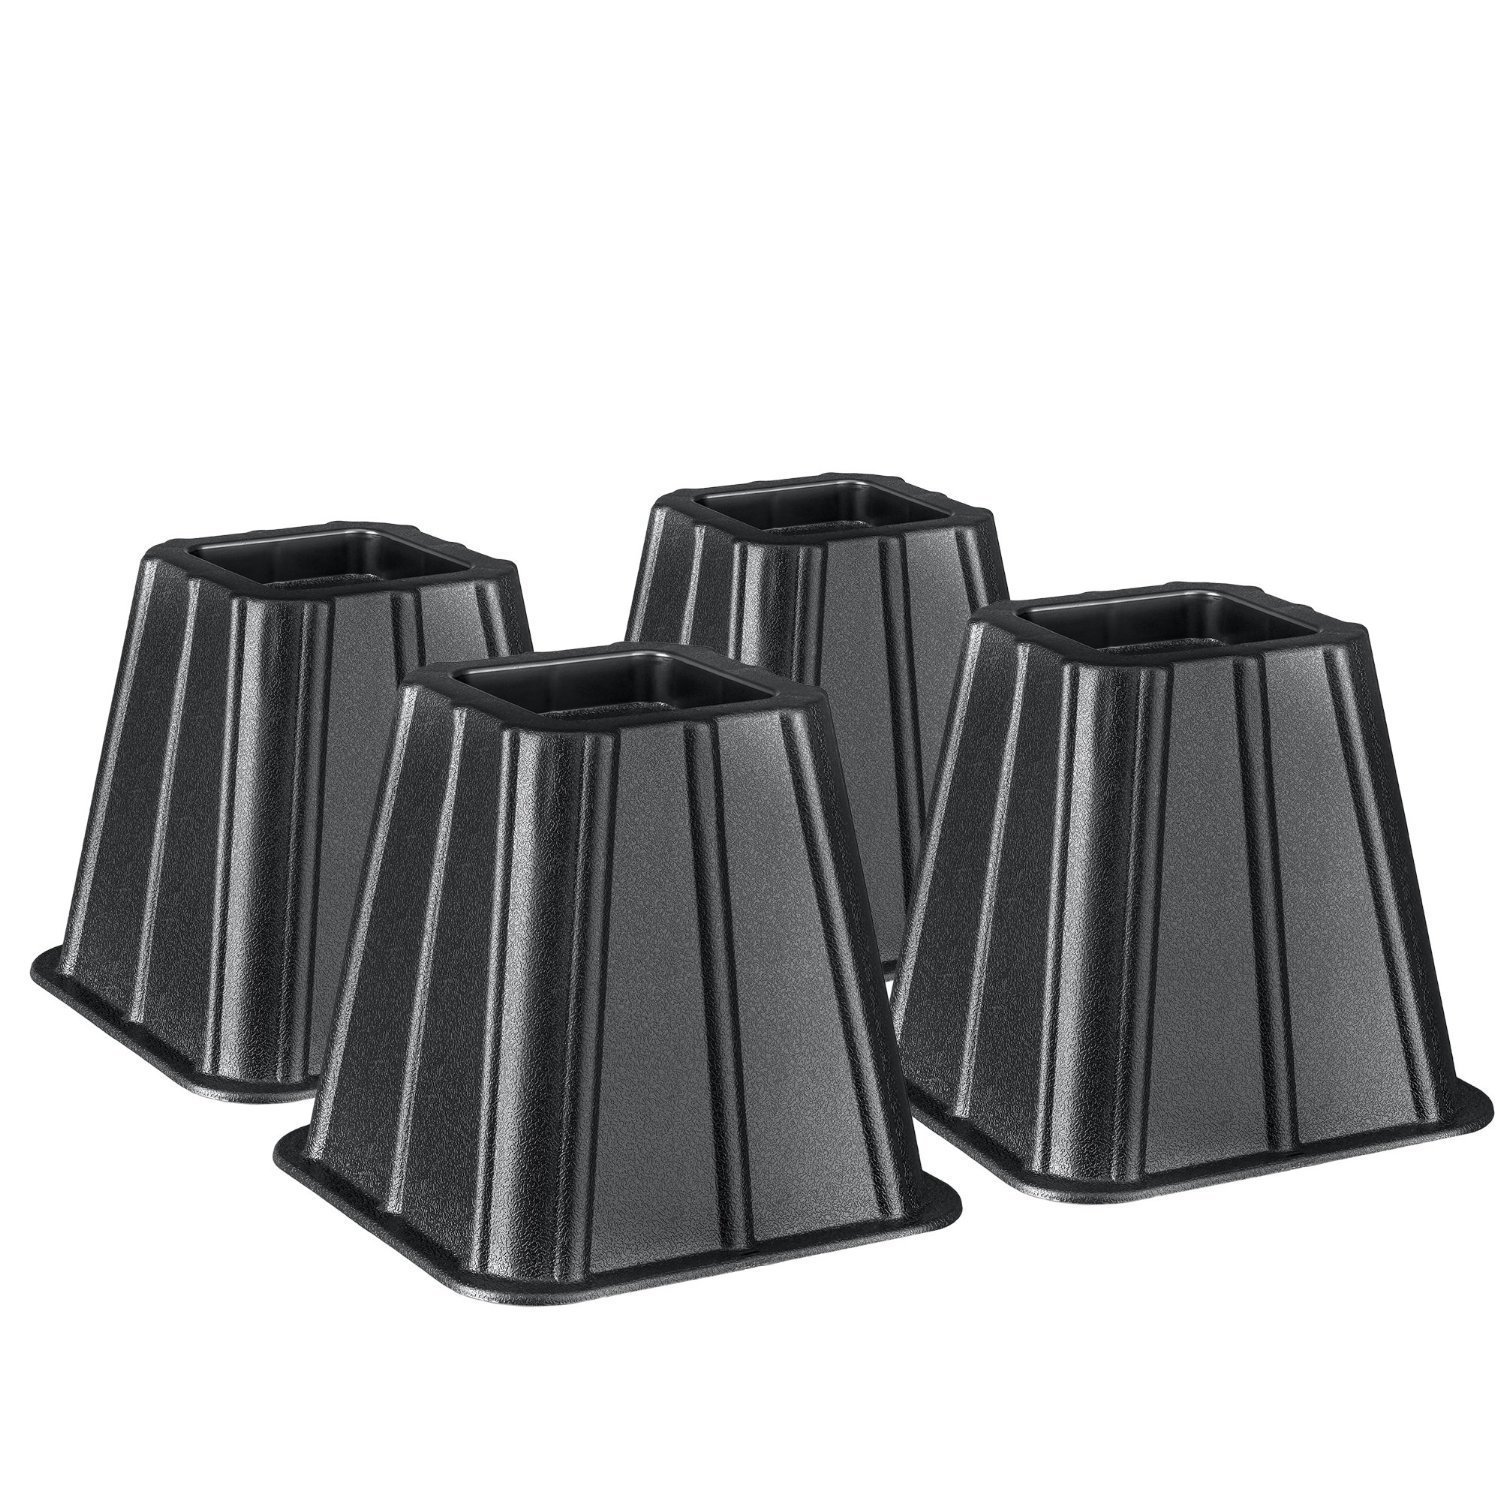 Set of 4 Bed Risers Raise Furniture Create Underbed Storage Starplast 53-317